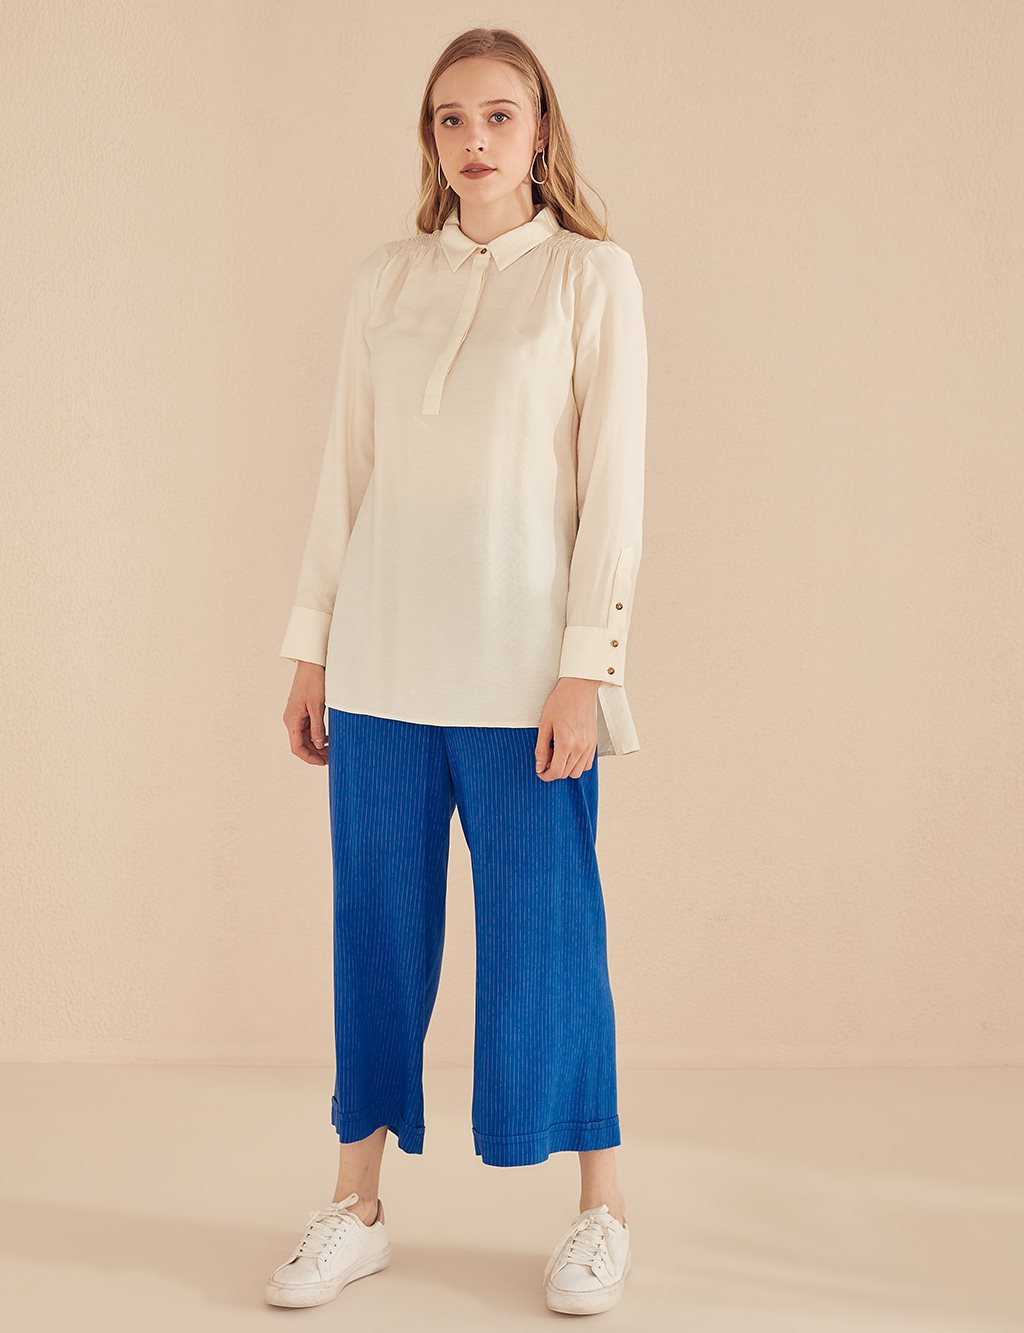 Ruched Detailed Blouse B20 10092 Ecru